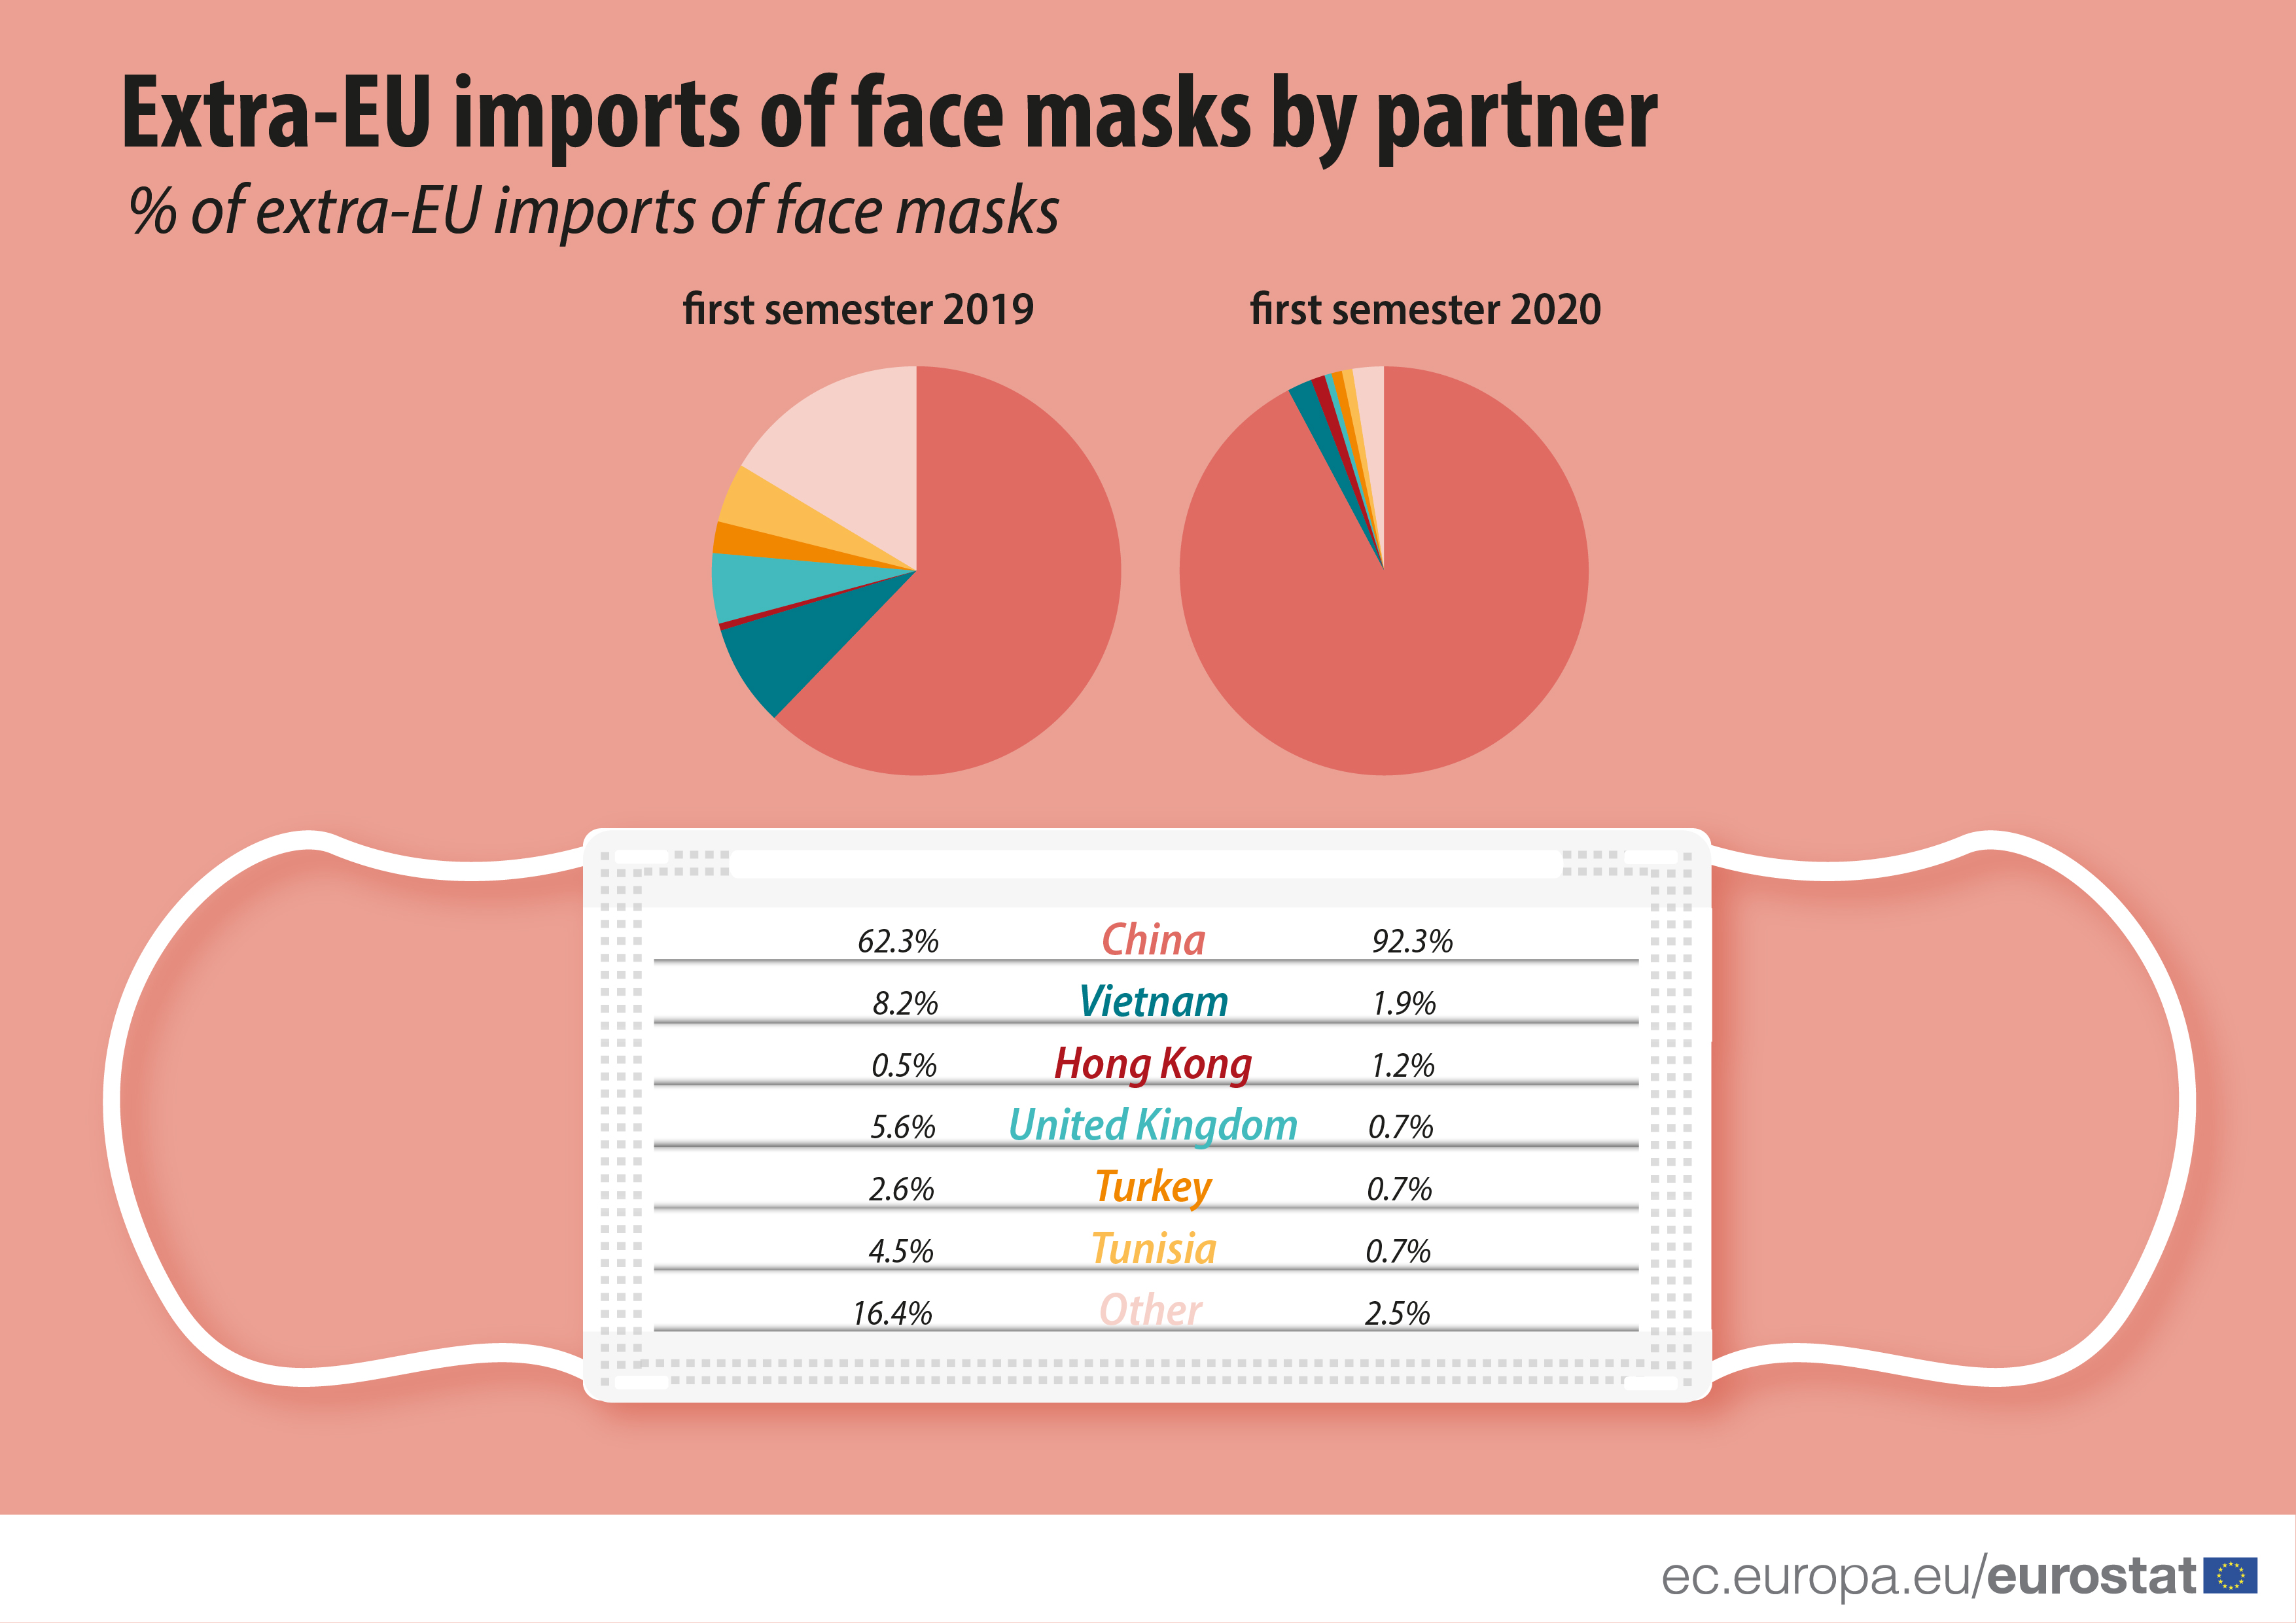 Extra-EU imports of face masks by partner